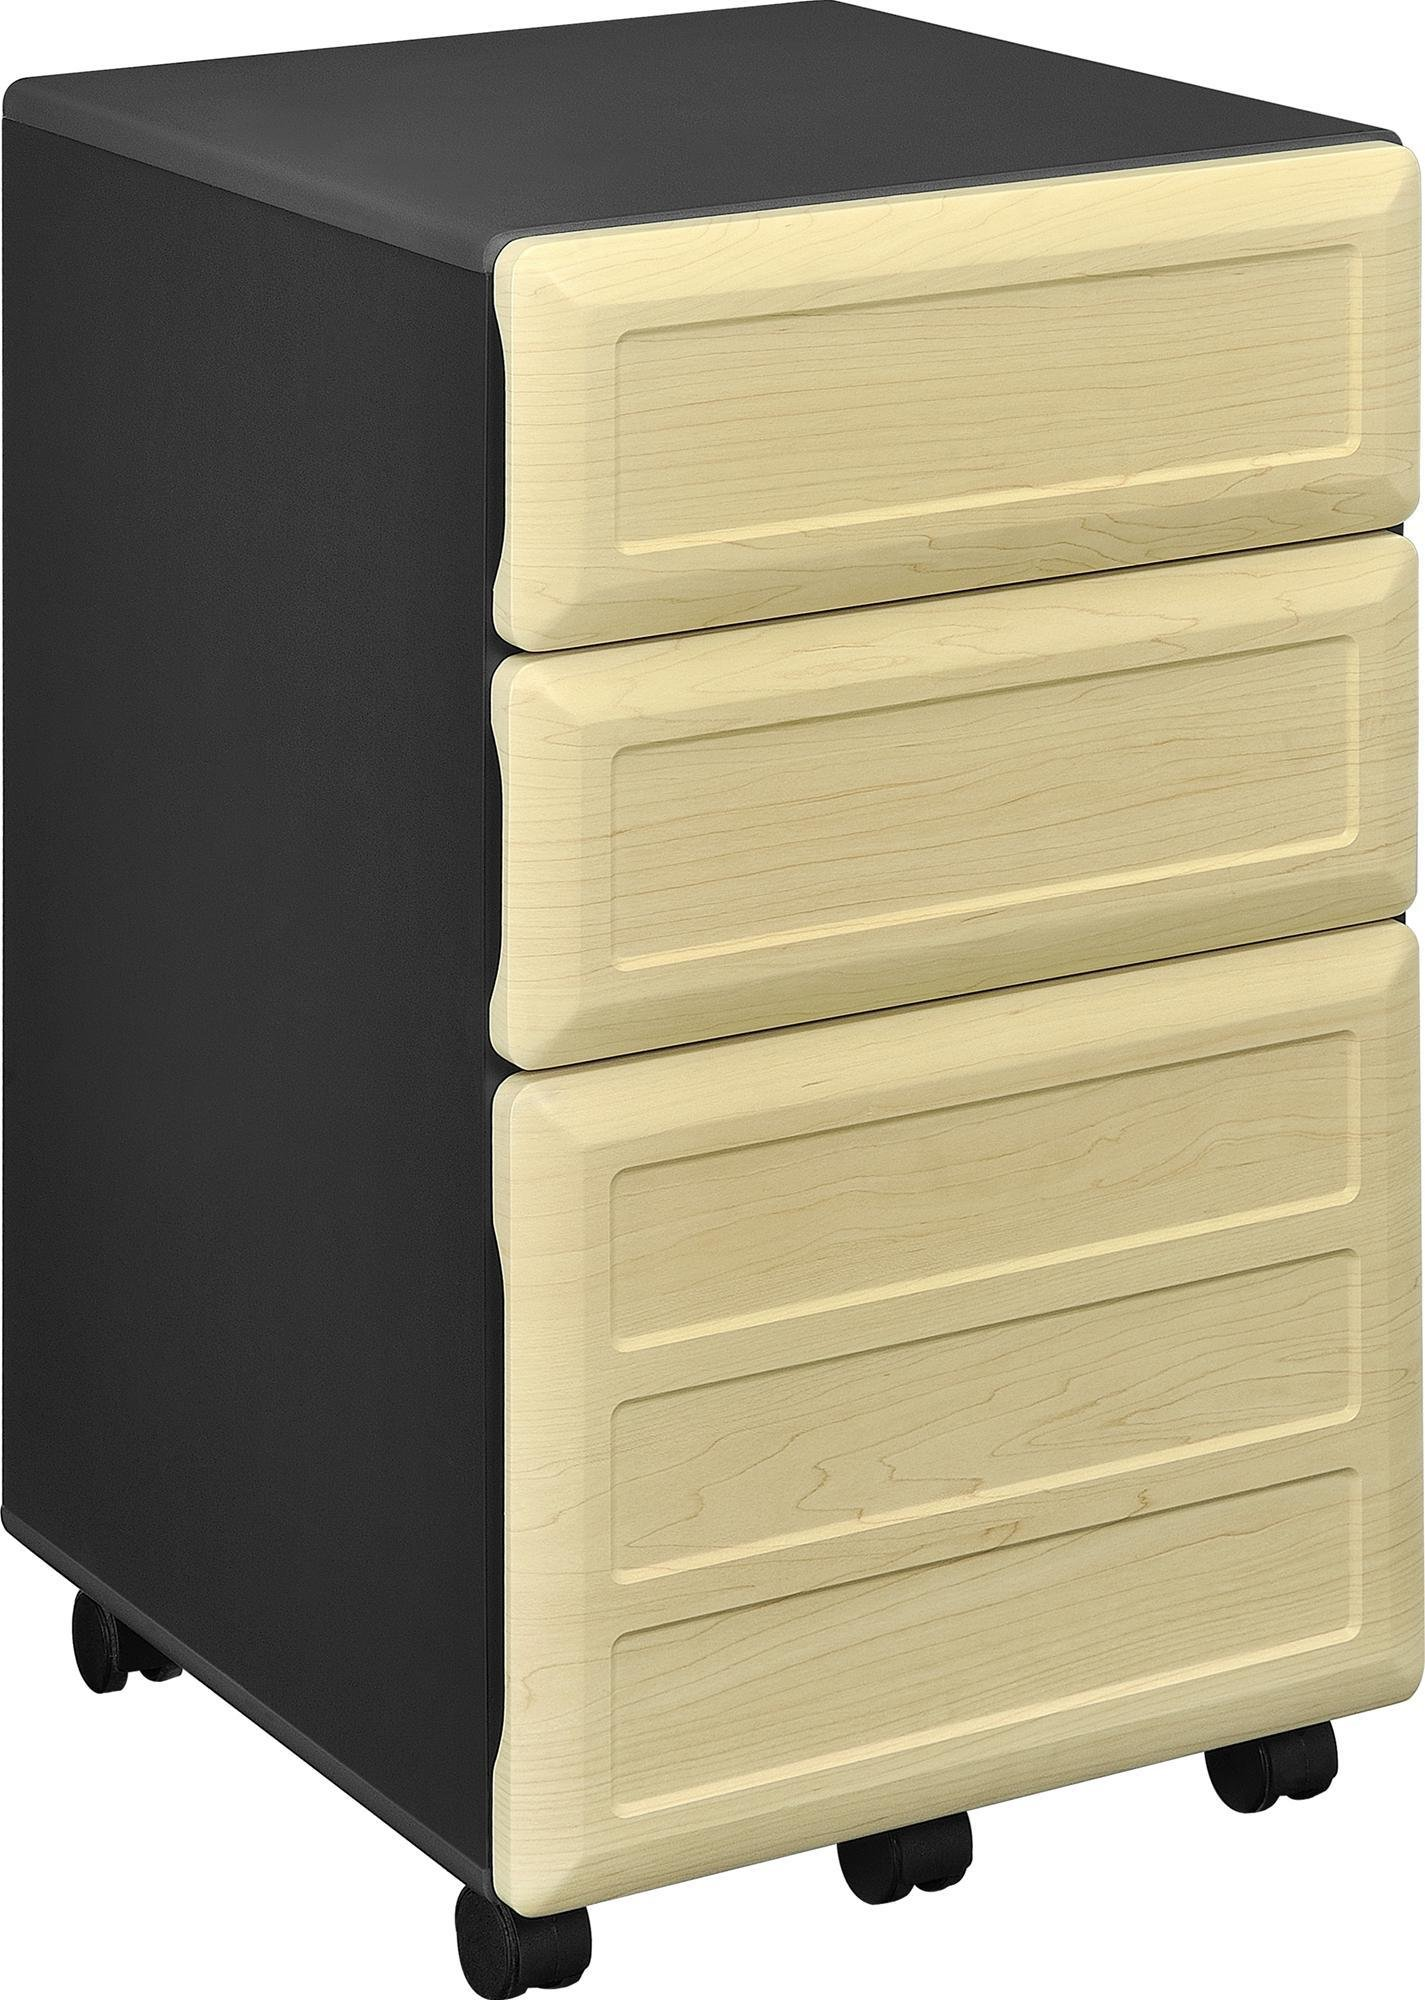 Ameriwood Home Pursuit Mobile File Cabinet, Gray by Altra Furniture